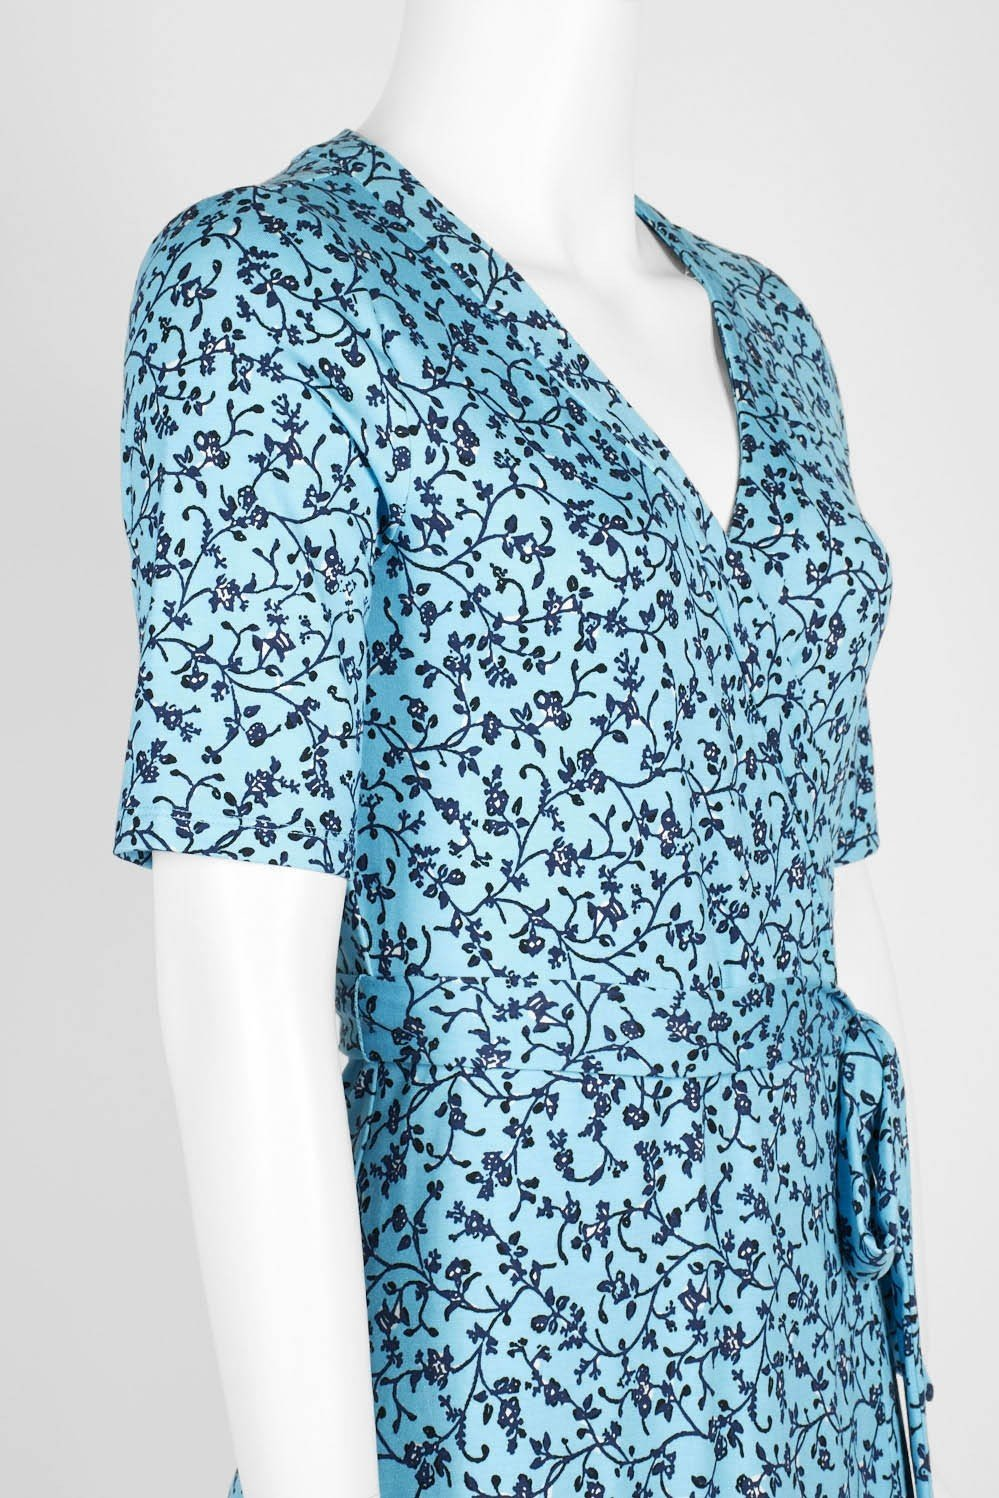 Adrianna Papell - AP1D103458 Floral Print V-neck Wrap Sheath Dress In Blue